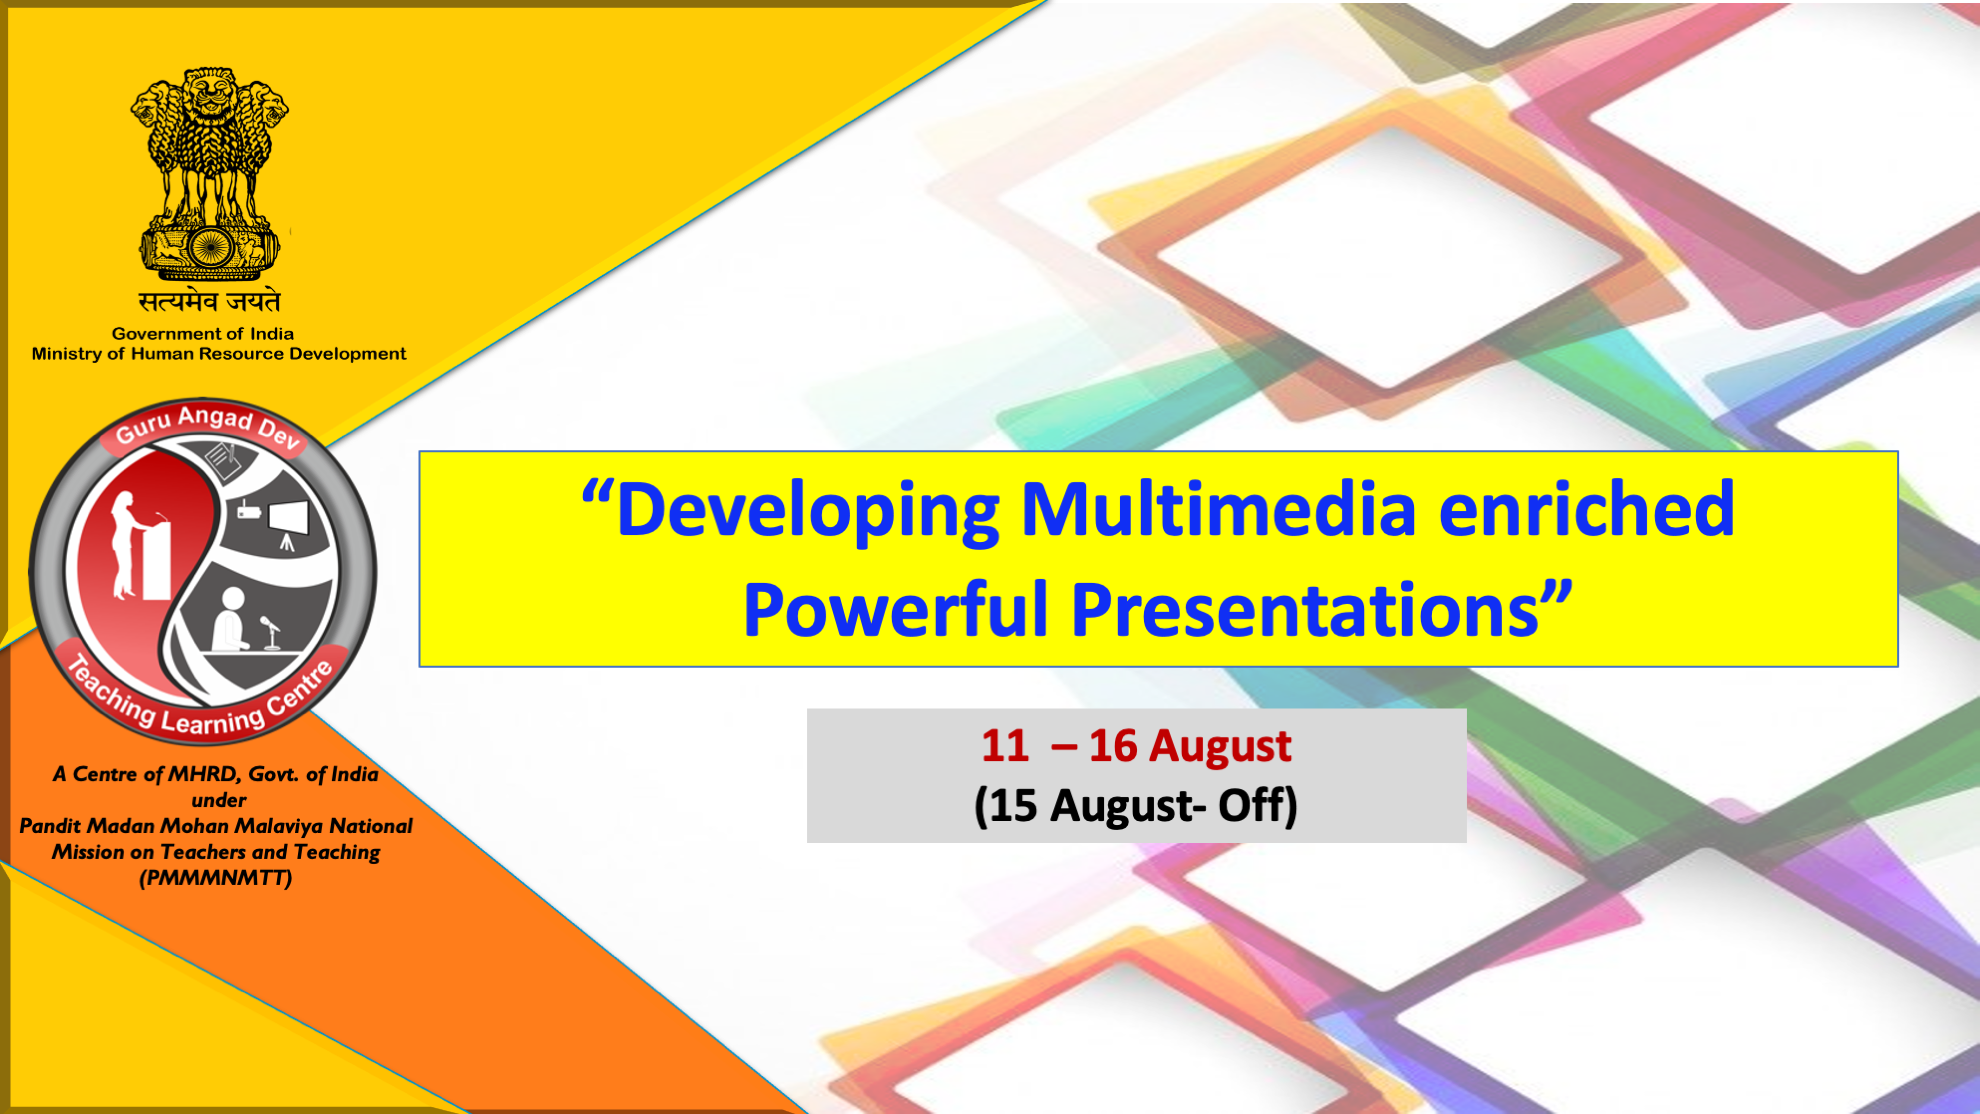 Course Image FDP: 11-16 August 2020 Developing Multimedia enriched Powerful Presentations